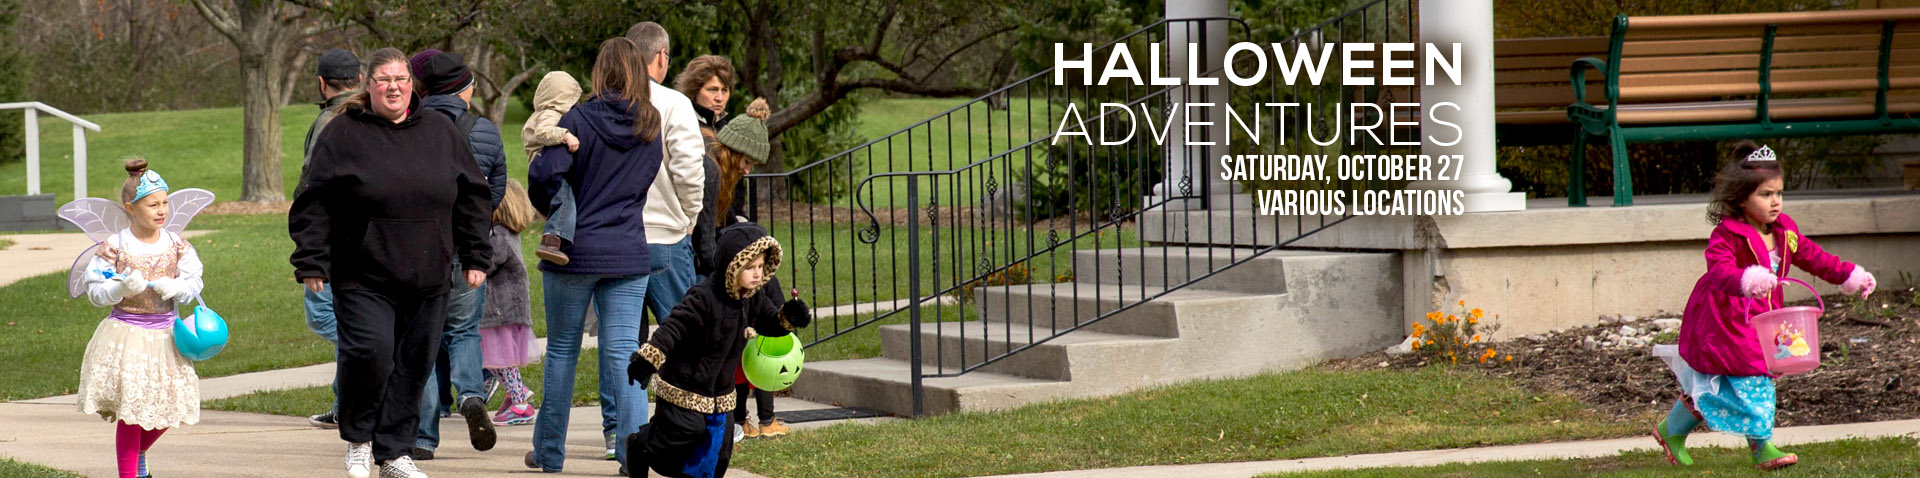 Halloween Adventures 2018